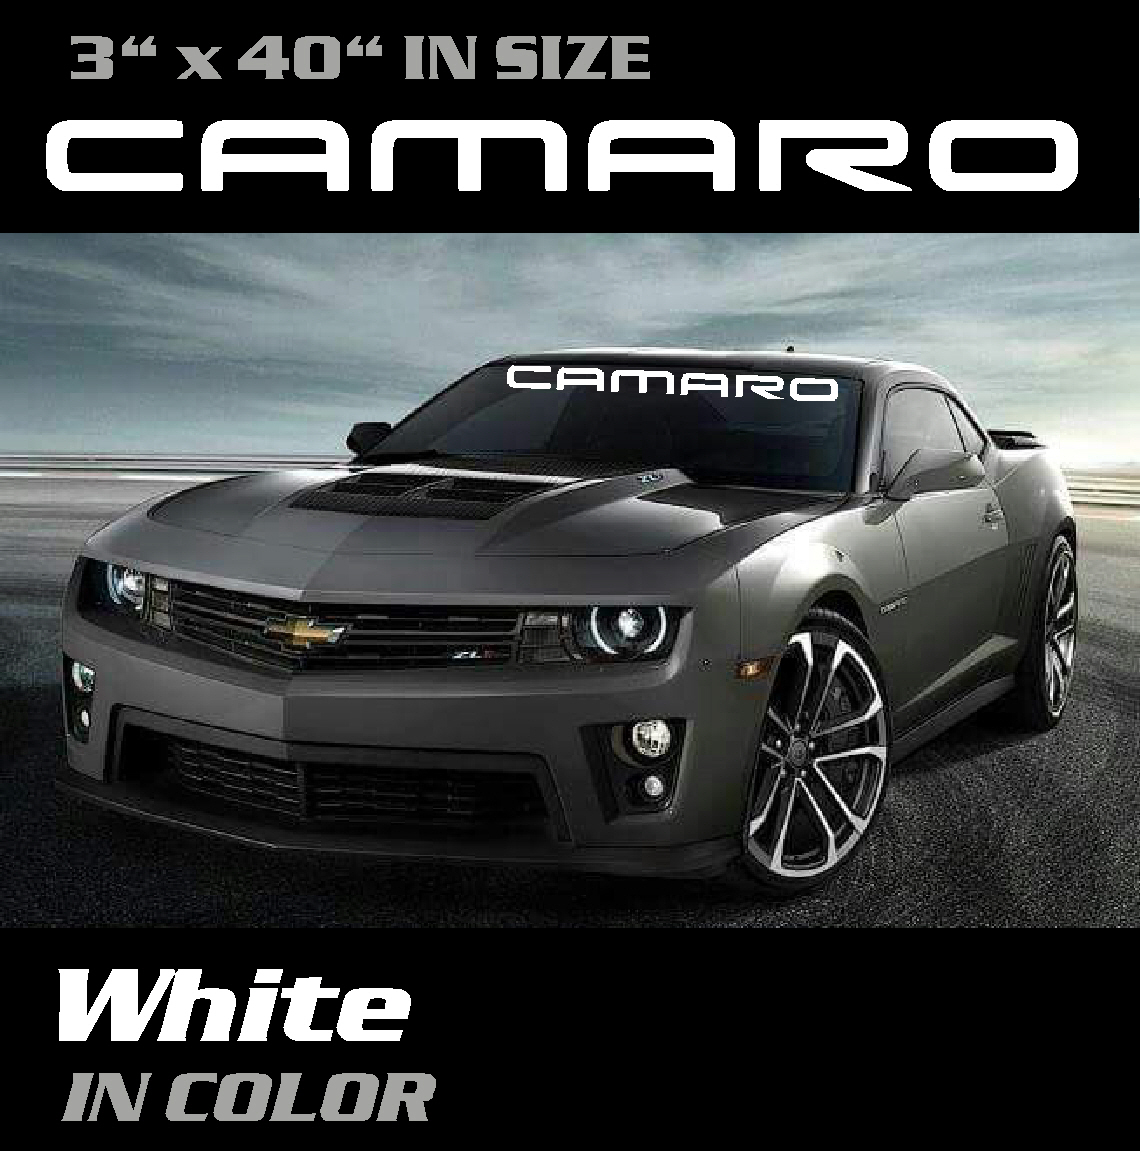 Emblem Decal 3.5 inch by 36 inch Yellow and Silver Camaro SS Windshield Banner Graphic Sticker